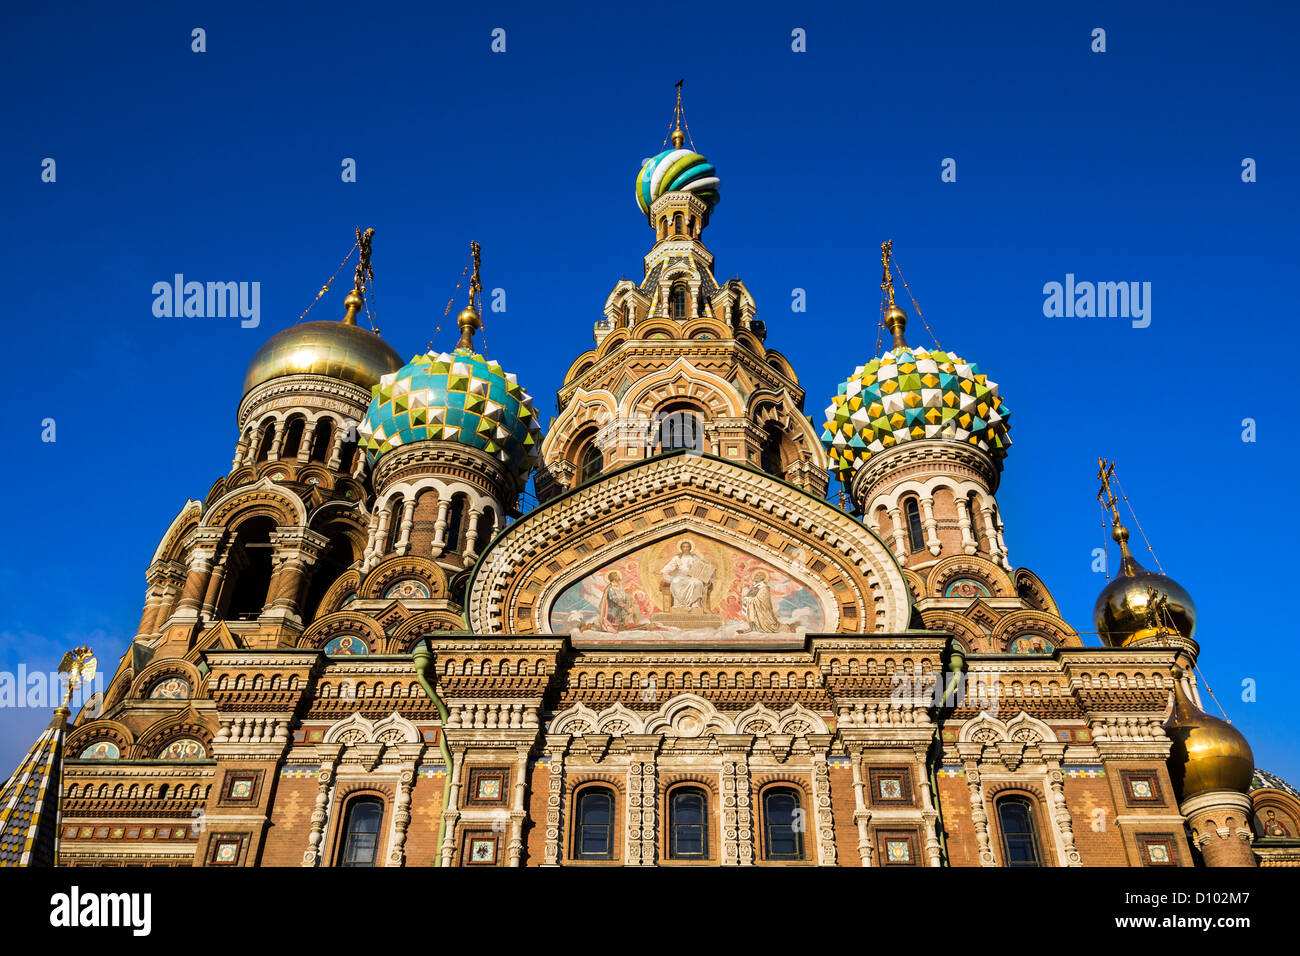 Church of the Savior on Blood, St Petersburg, Russia - Stock Image